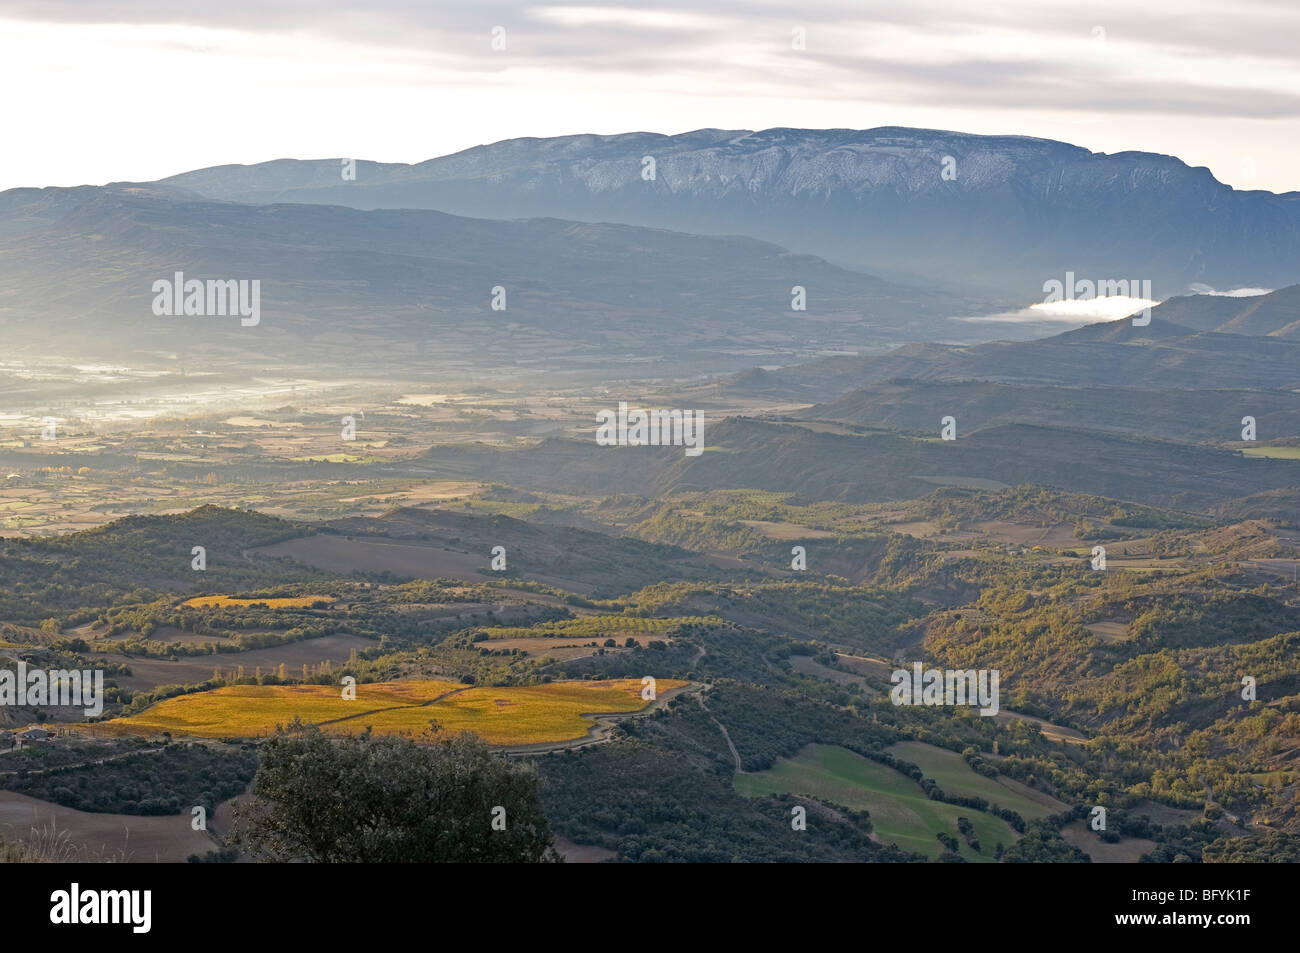 Dawn breaking over the Catalonian Pyrenees, near town of Tremp. Spain. Stock Photo